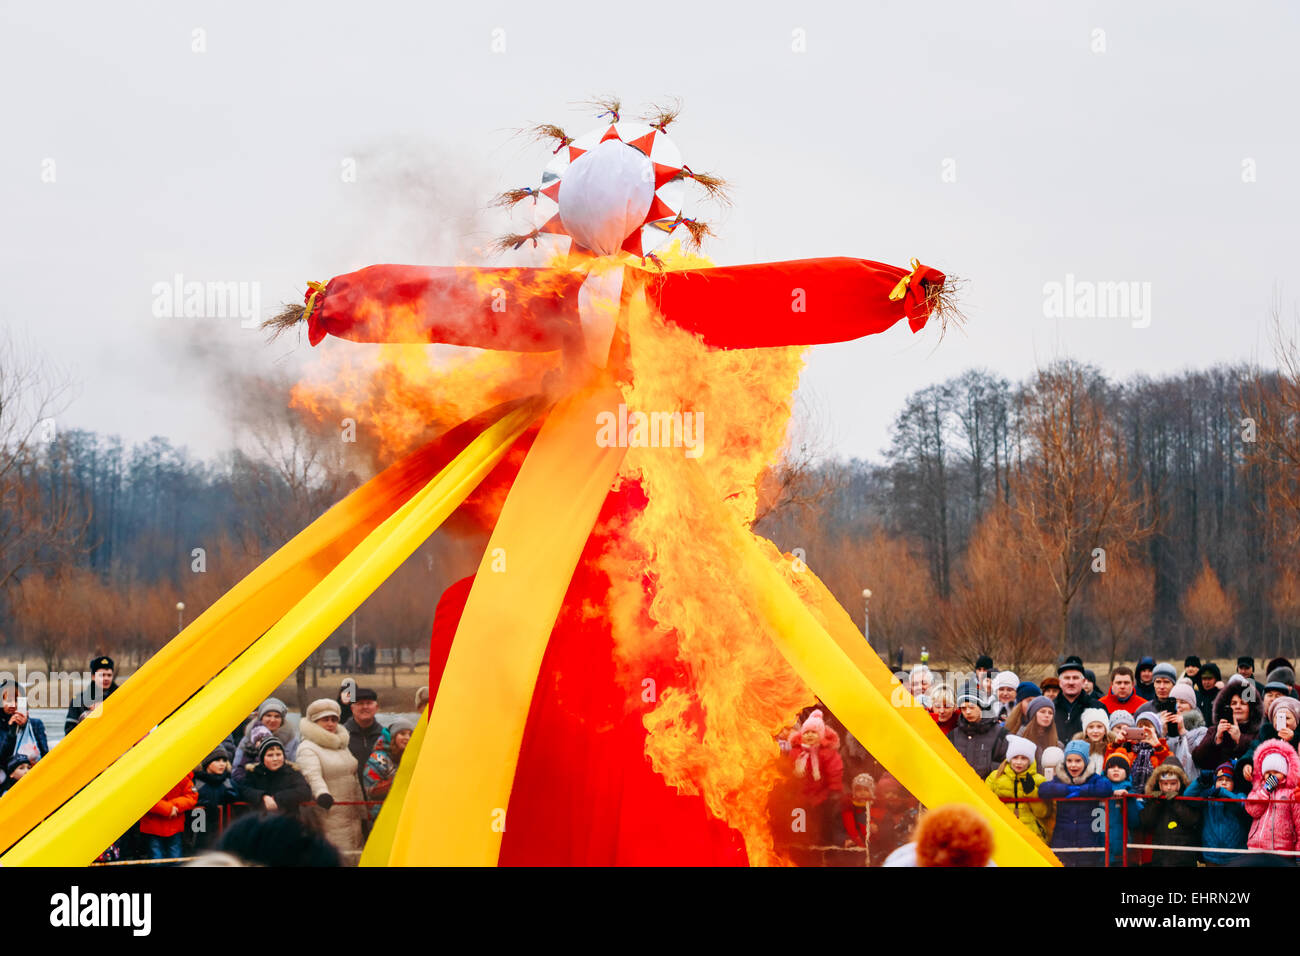 GOMEL, BELARUS - February 21, 2014: Burning effigies straw Maslenitsa in fire on the traditional holiday dedicated - Stock Image